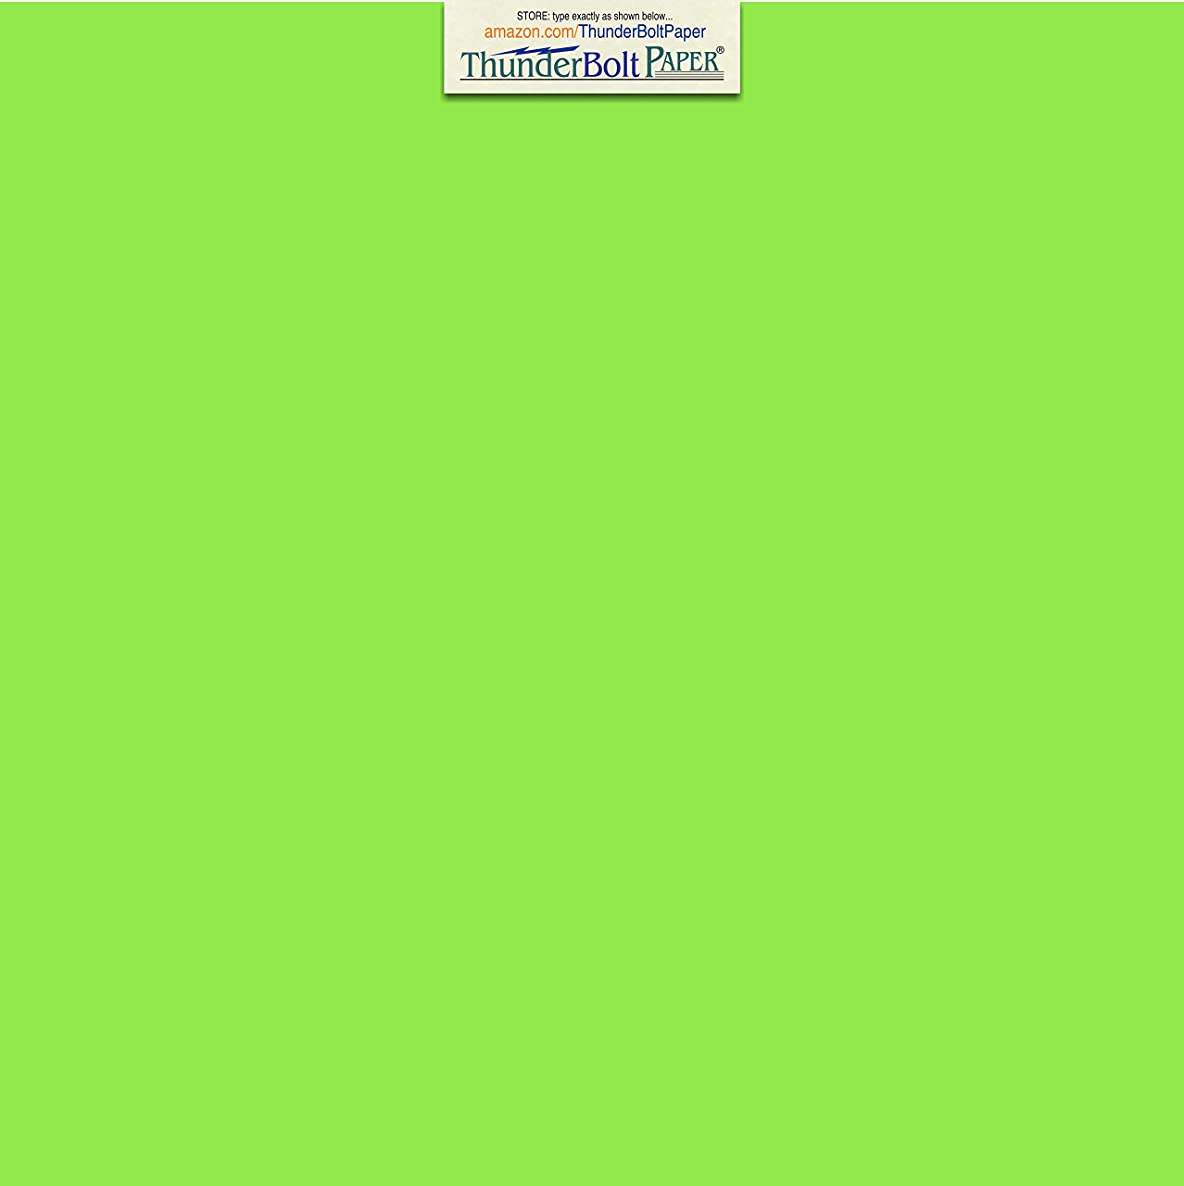 25 Bright Mint Green 65lb Cover Card Paper - 12 X 12 Inches Scrapbook Album Cover Size - 65 lb/Pound Light Weight Cardstock - Quality Printable Smooth Surface for Bright Colorful Results